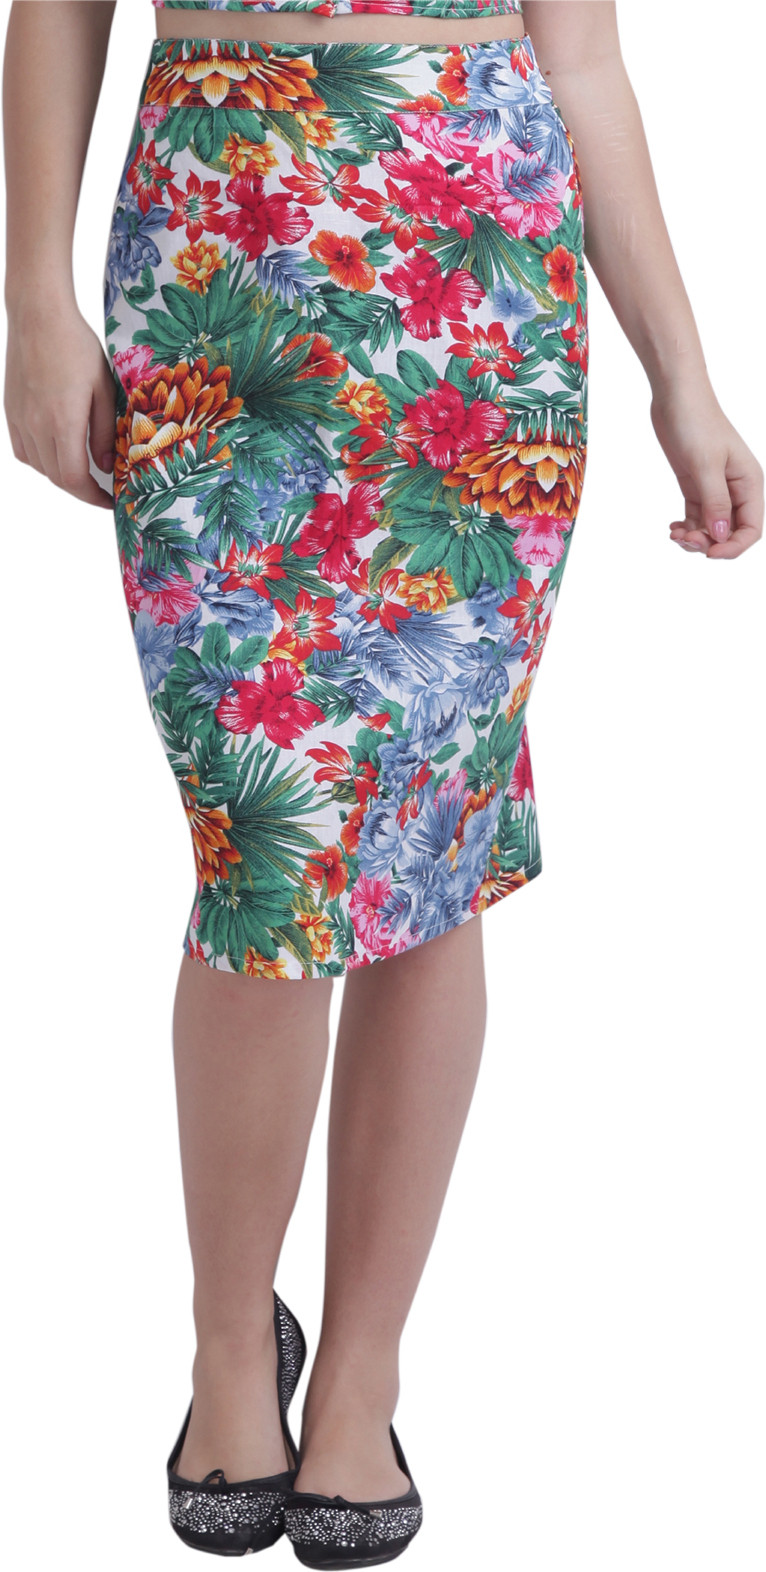 Ridress Floral Print Womens Pencil Multicolor Skirt